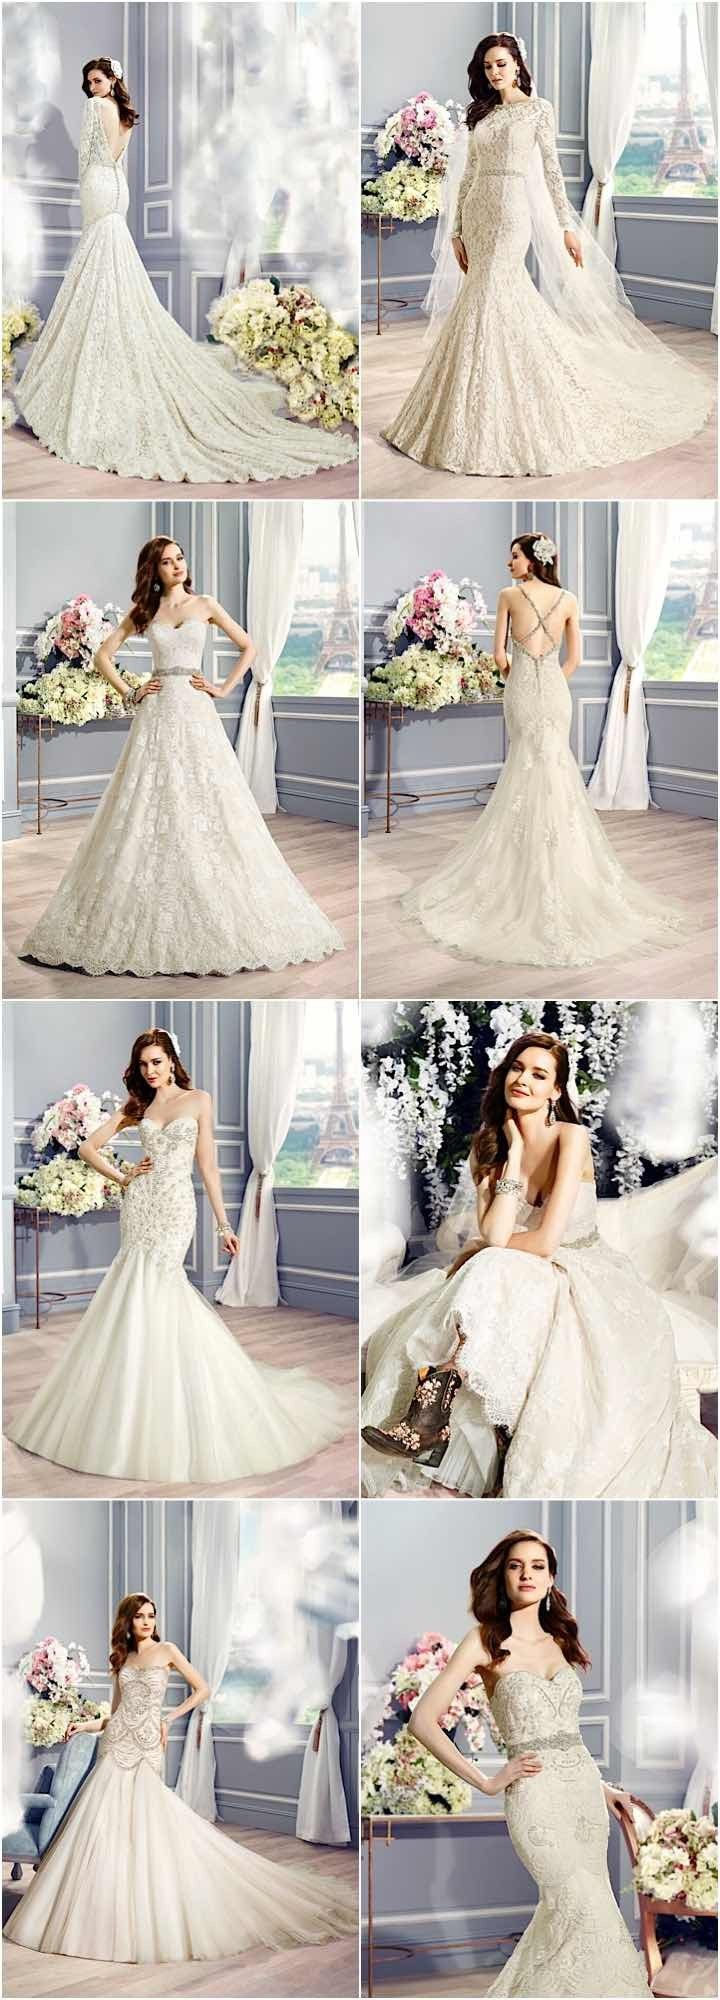 Moonlight Couture wedding dresses 2015